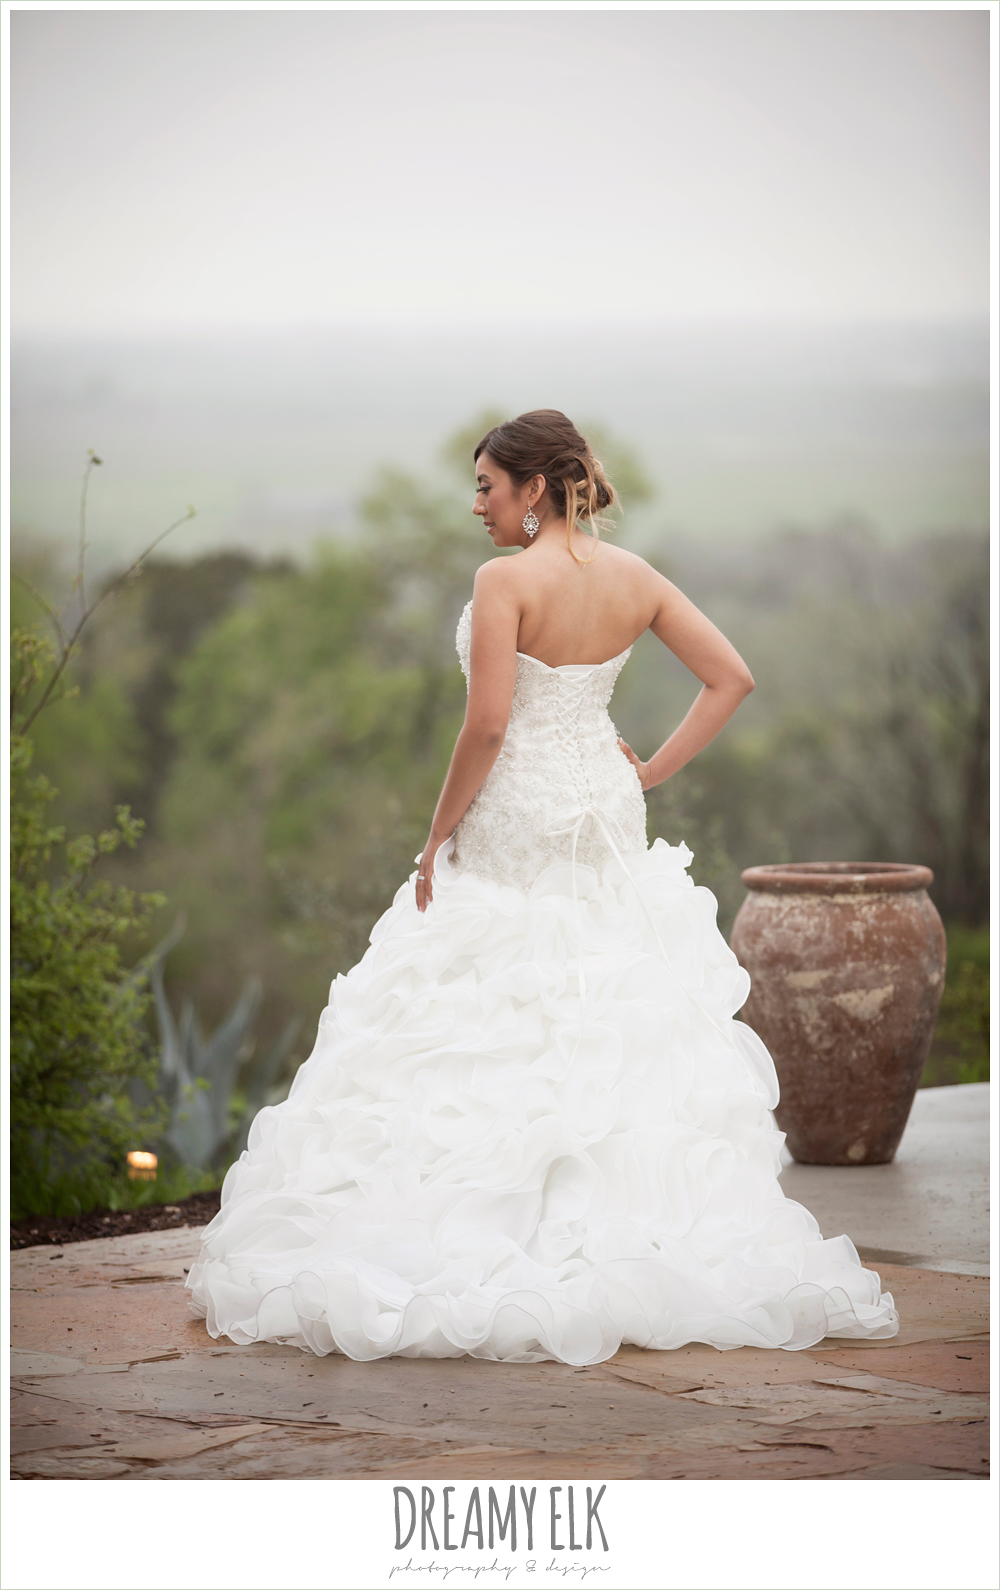 foggy wedding day, sweetheart strapless ruffle skirt wedding dress, austin spring wedding {dreamy elk photography and design}